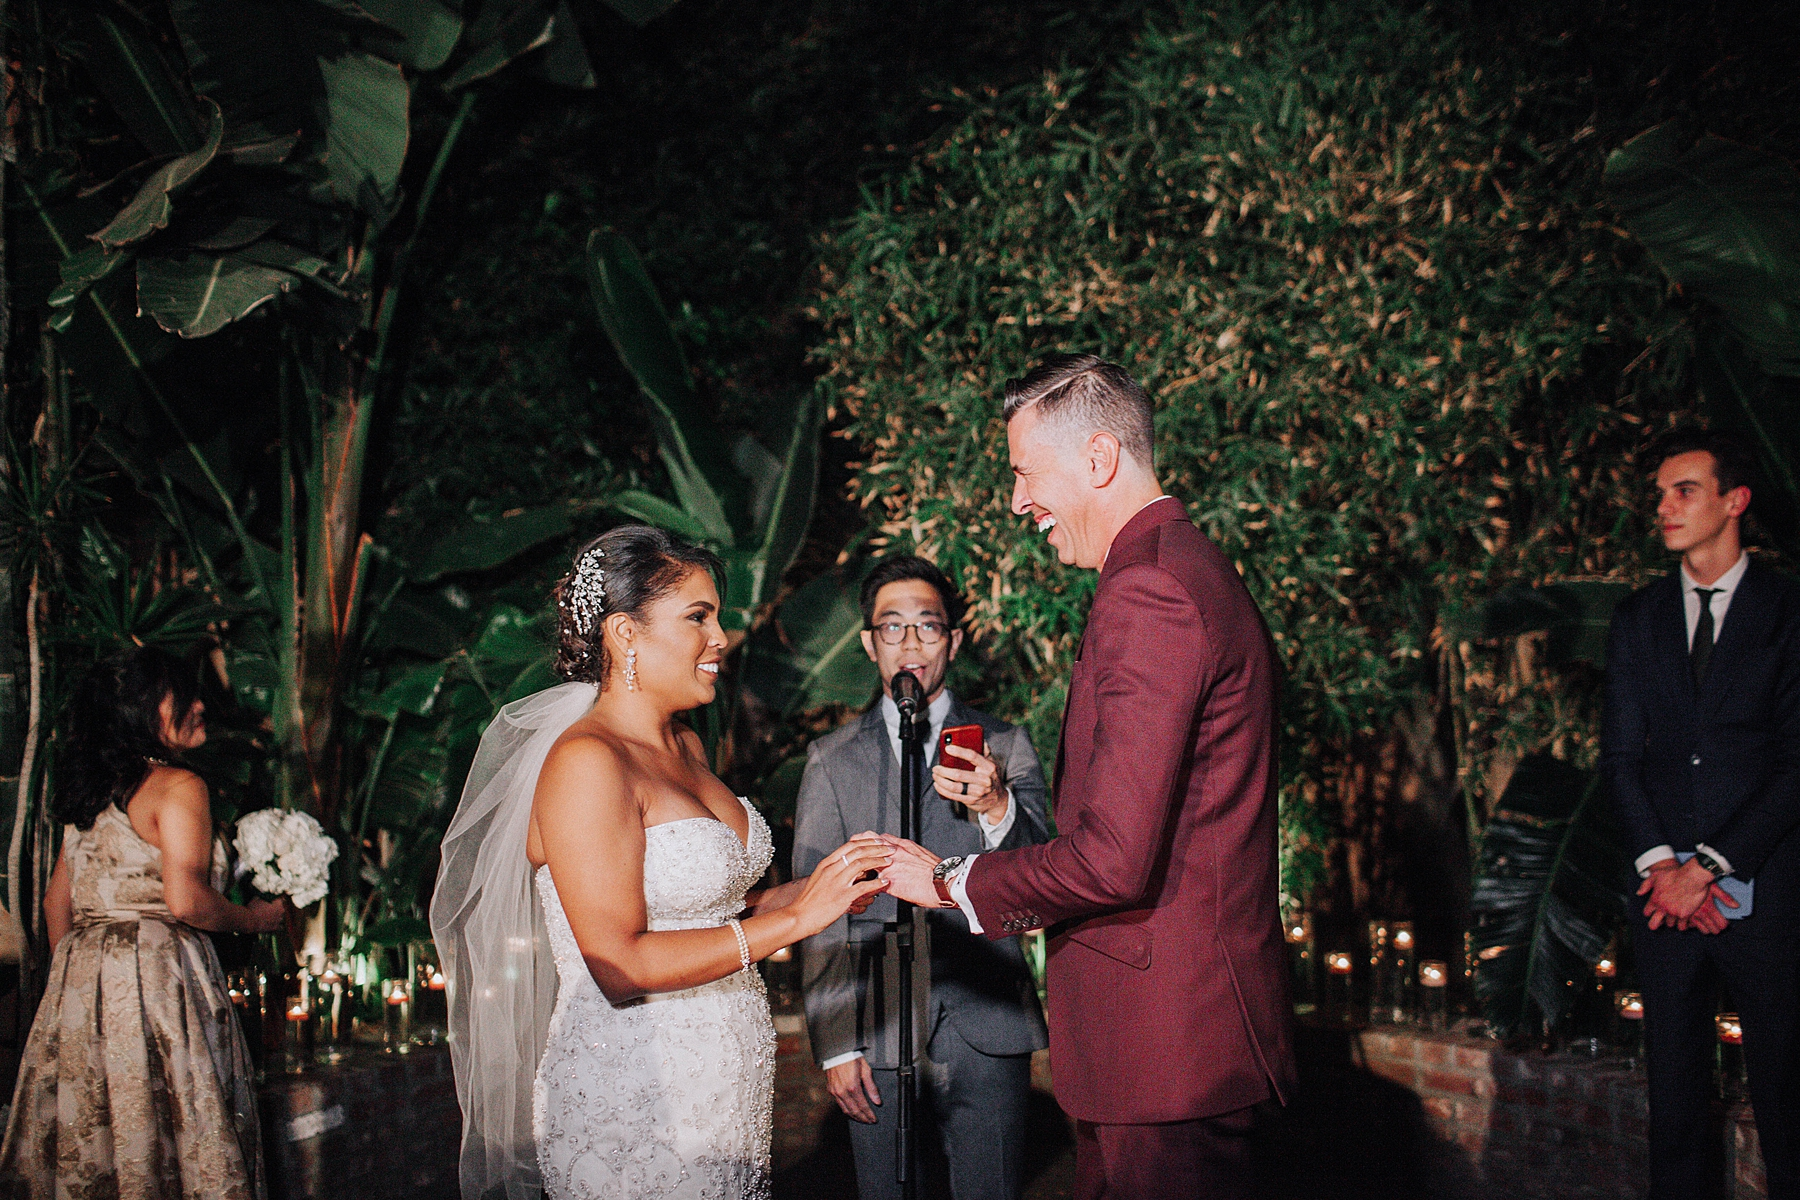 Bride and Groom Vows, Millwick Wedding Downtown Los Angeles